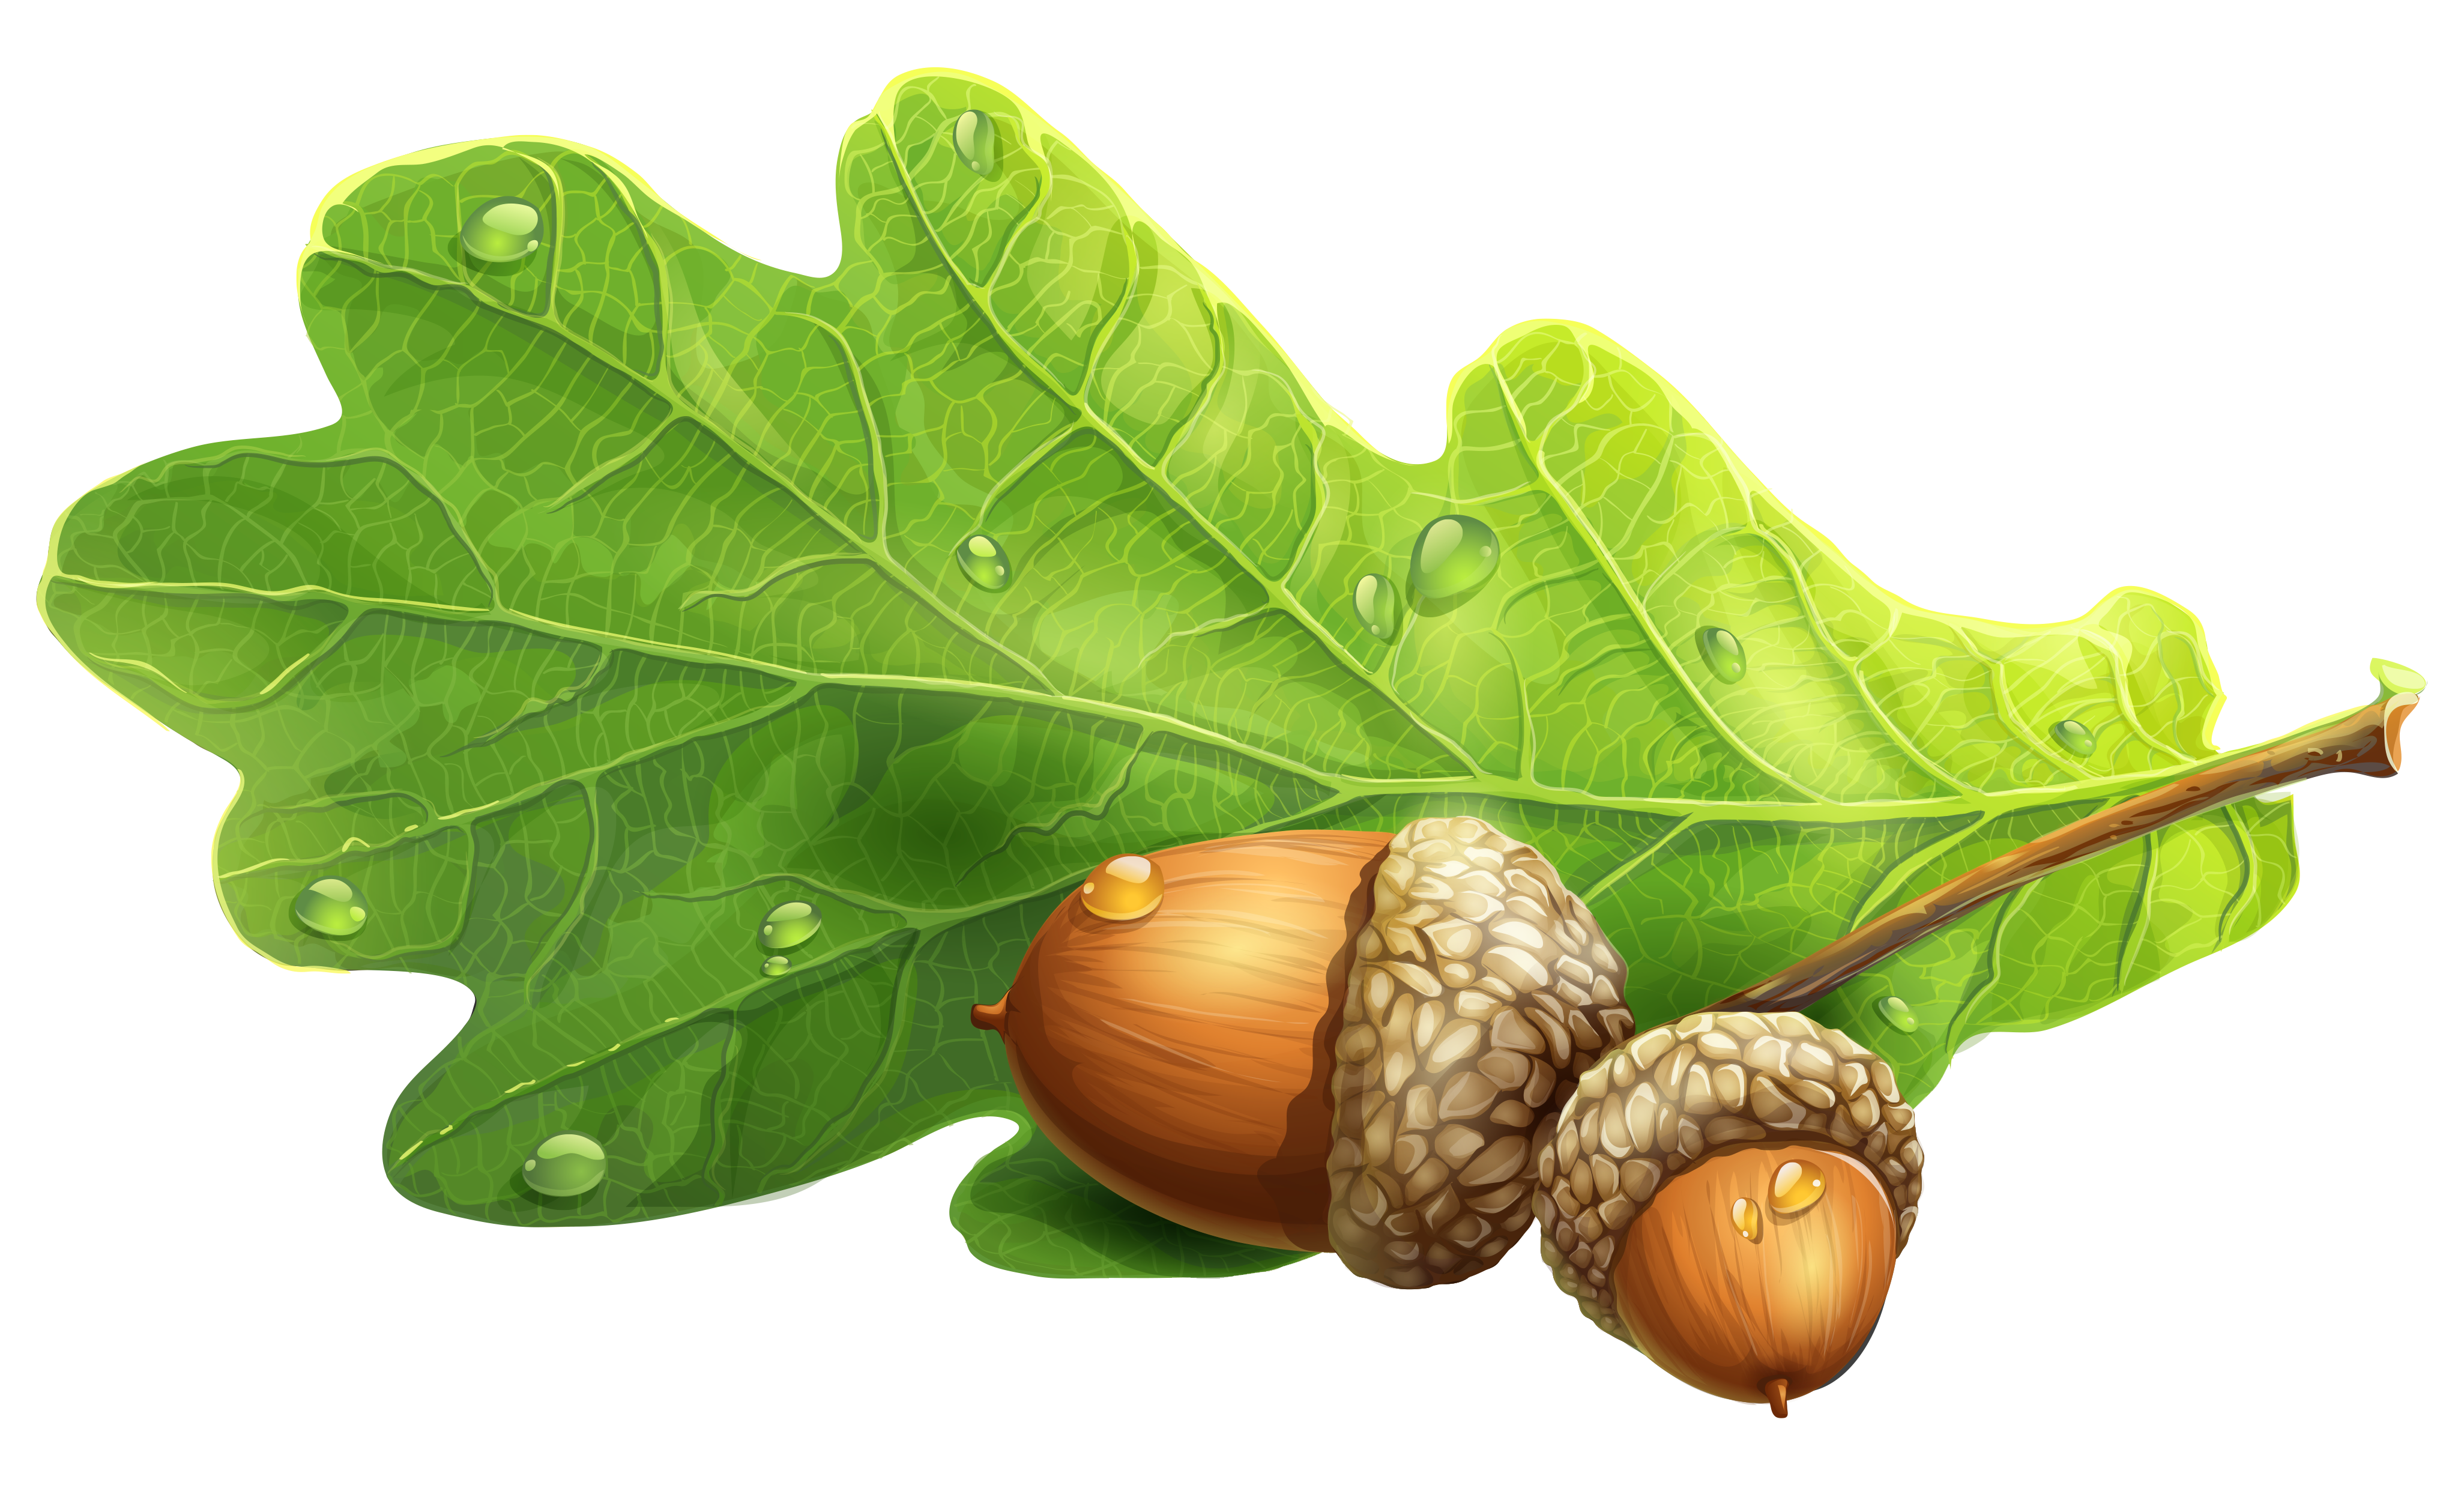 graphic free stock Free on dumielauxepices net. Acorn clipart painting